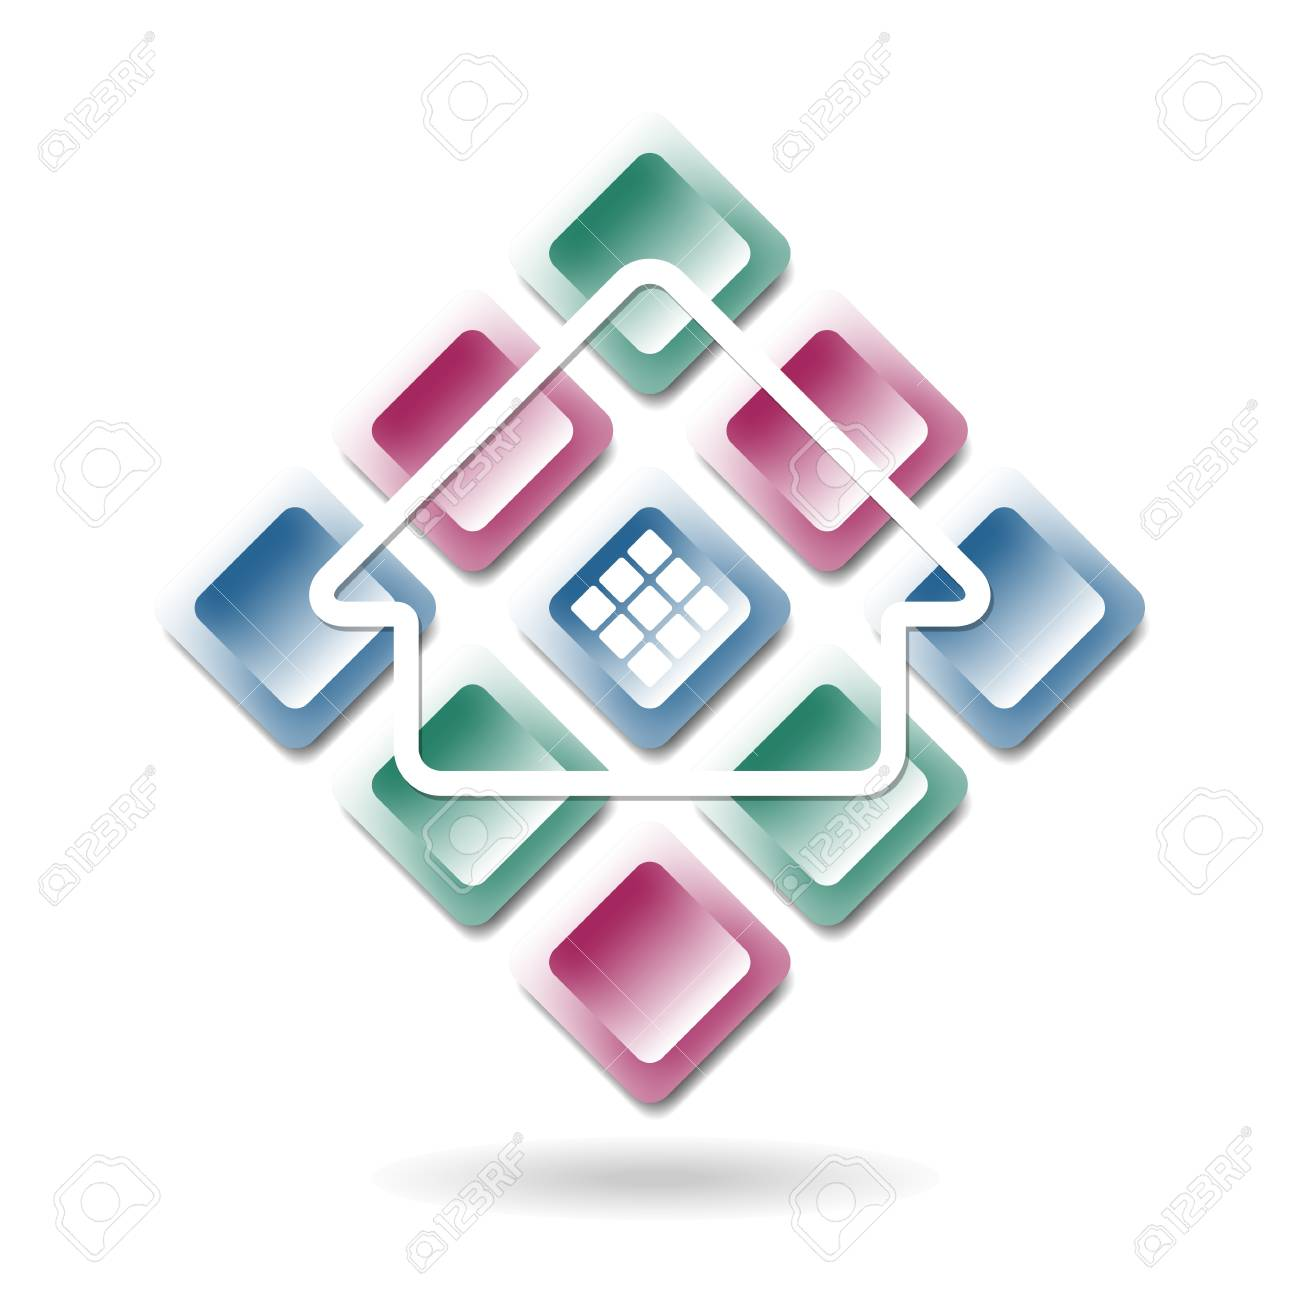 abstract building icon Stock Vector - 15479069